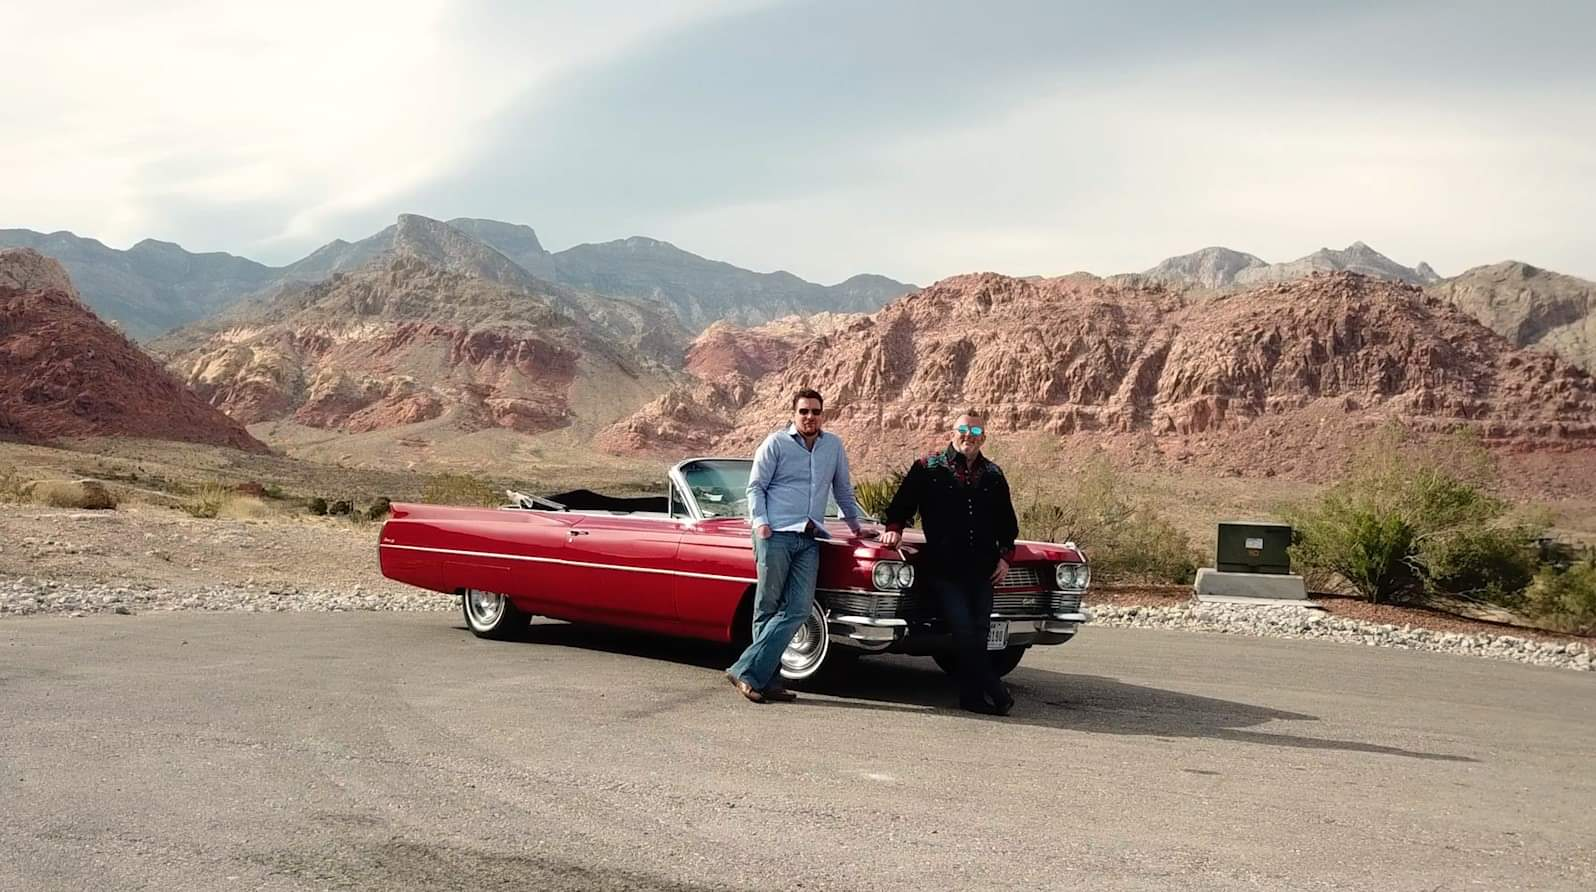 Win this wonderful red Cadillac 1964 by joining the launch